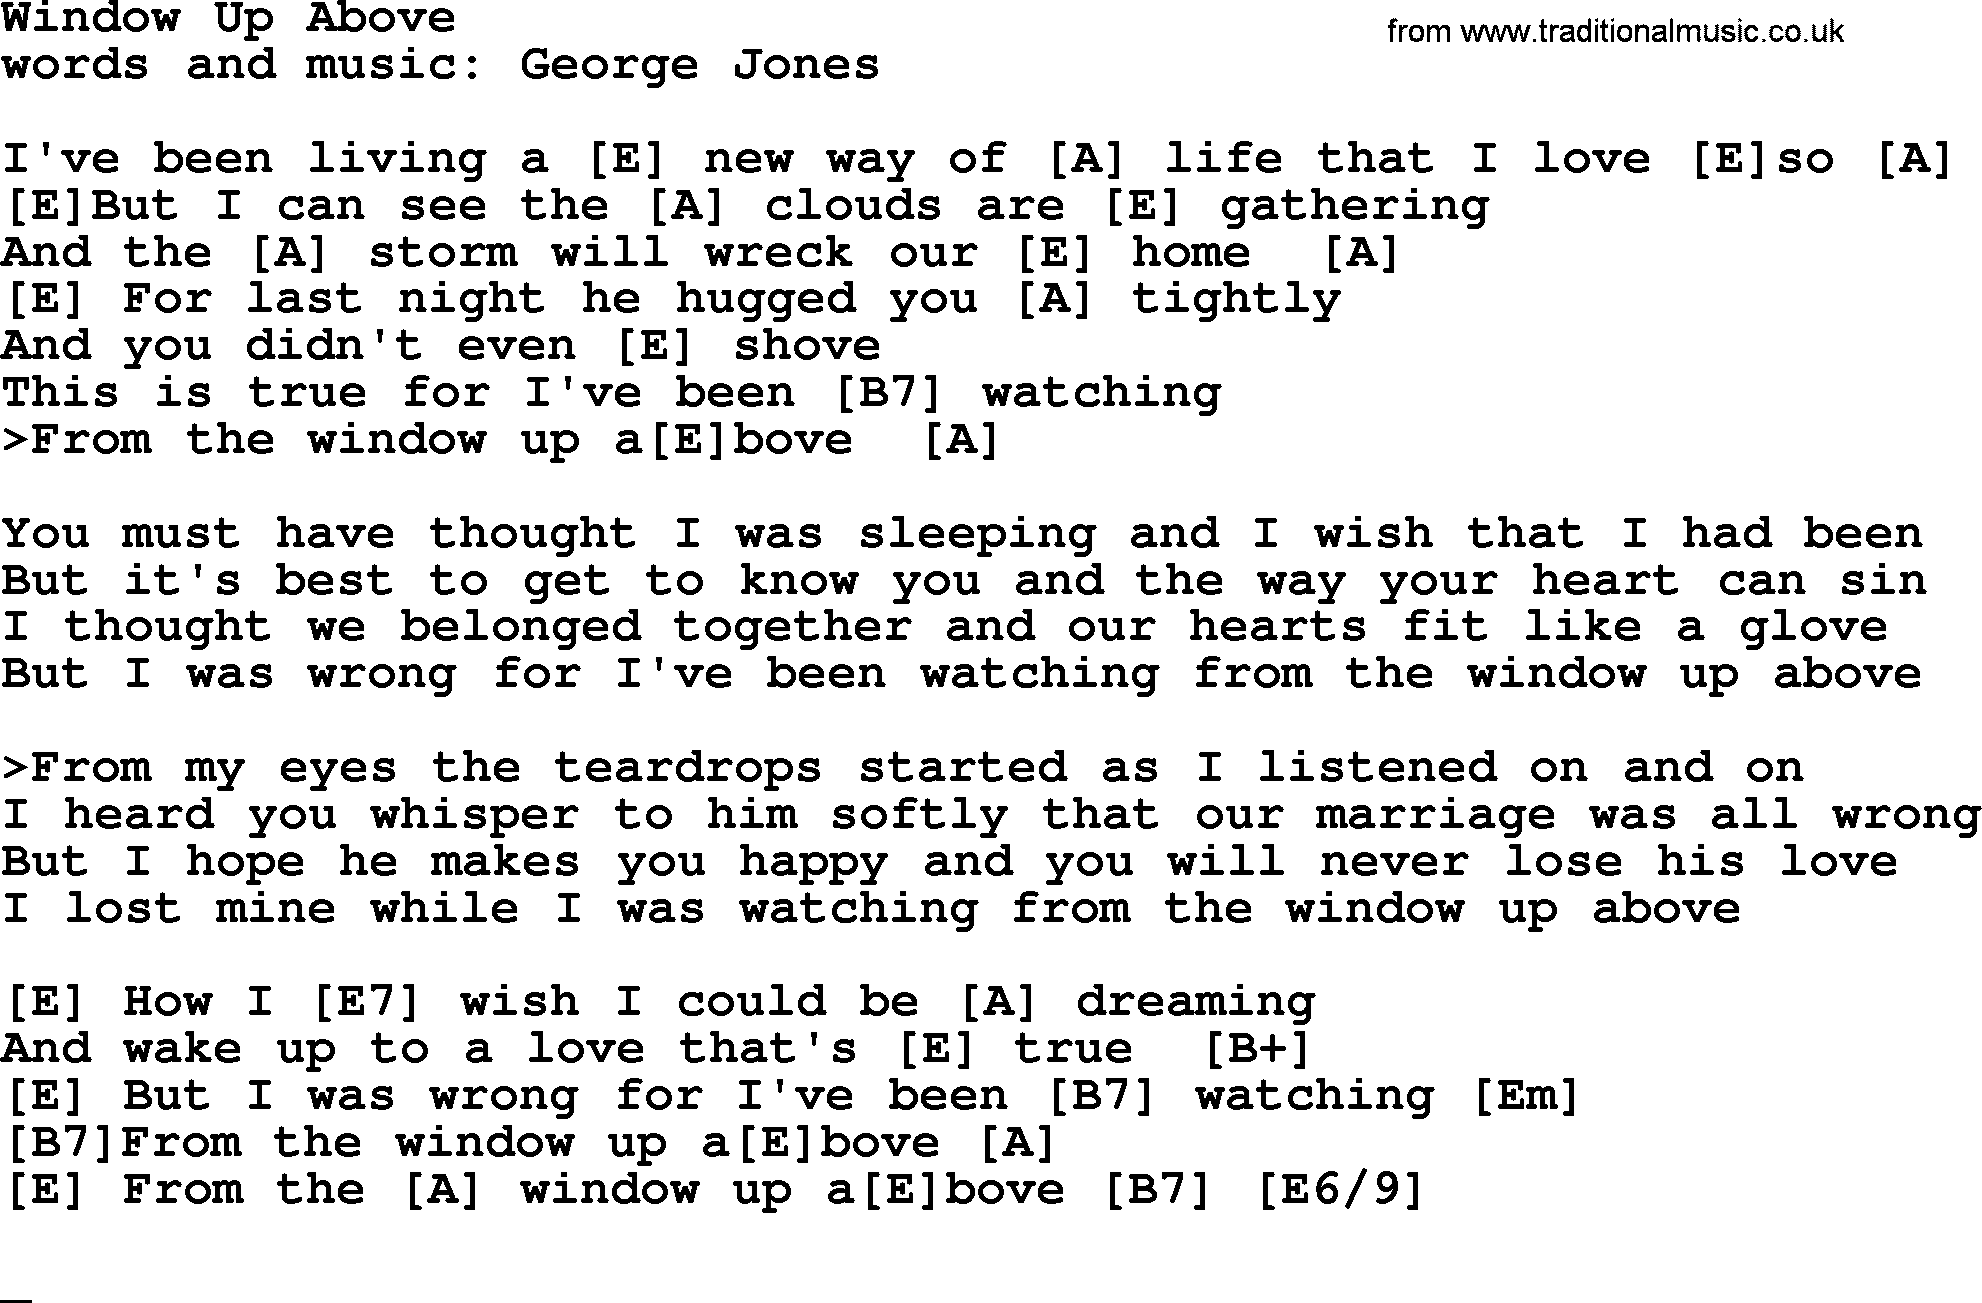 window up above by george jones counrty song lyrics and